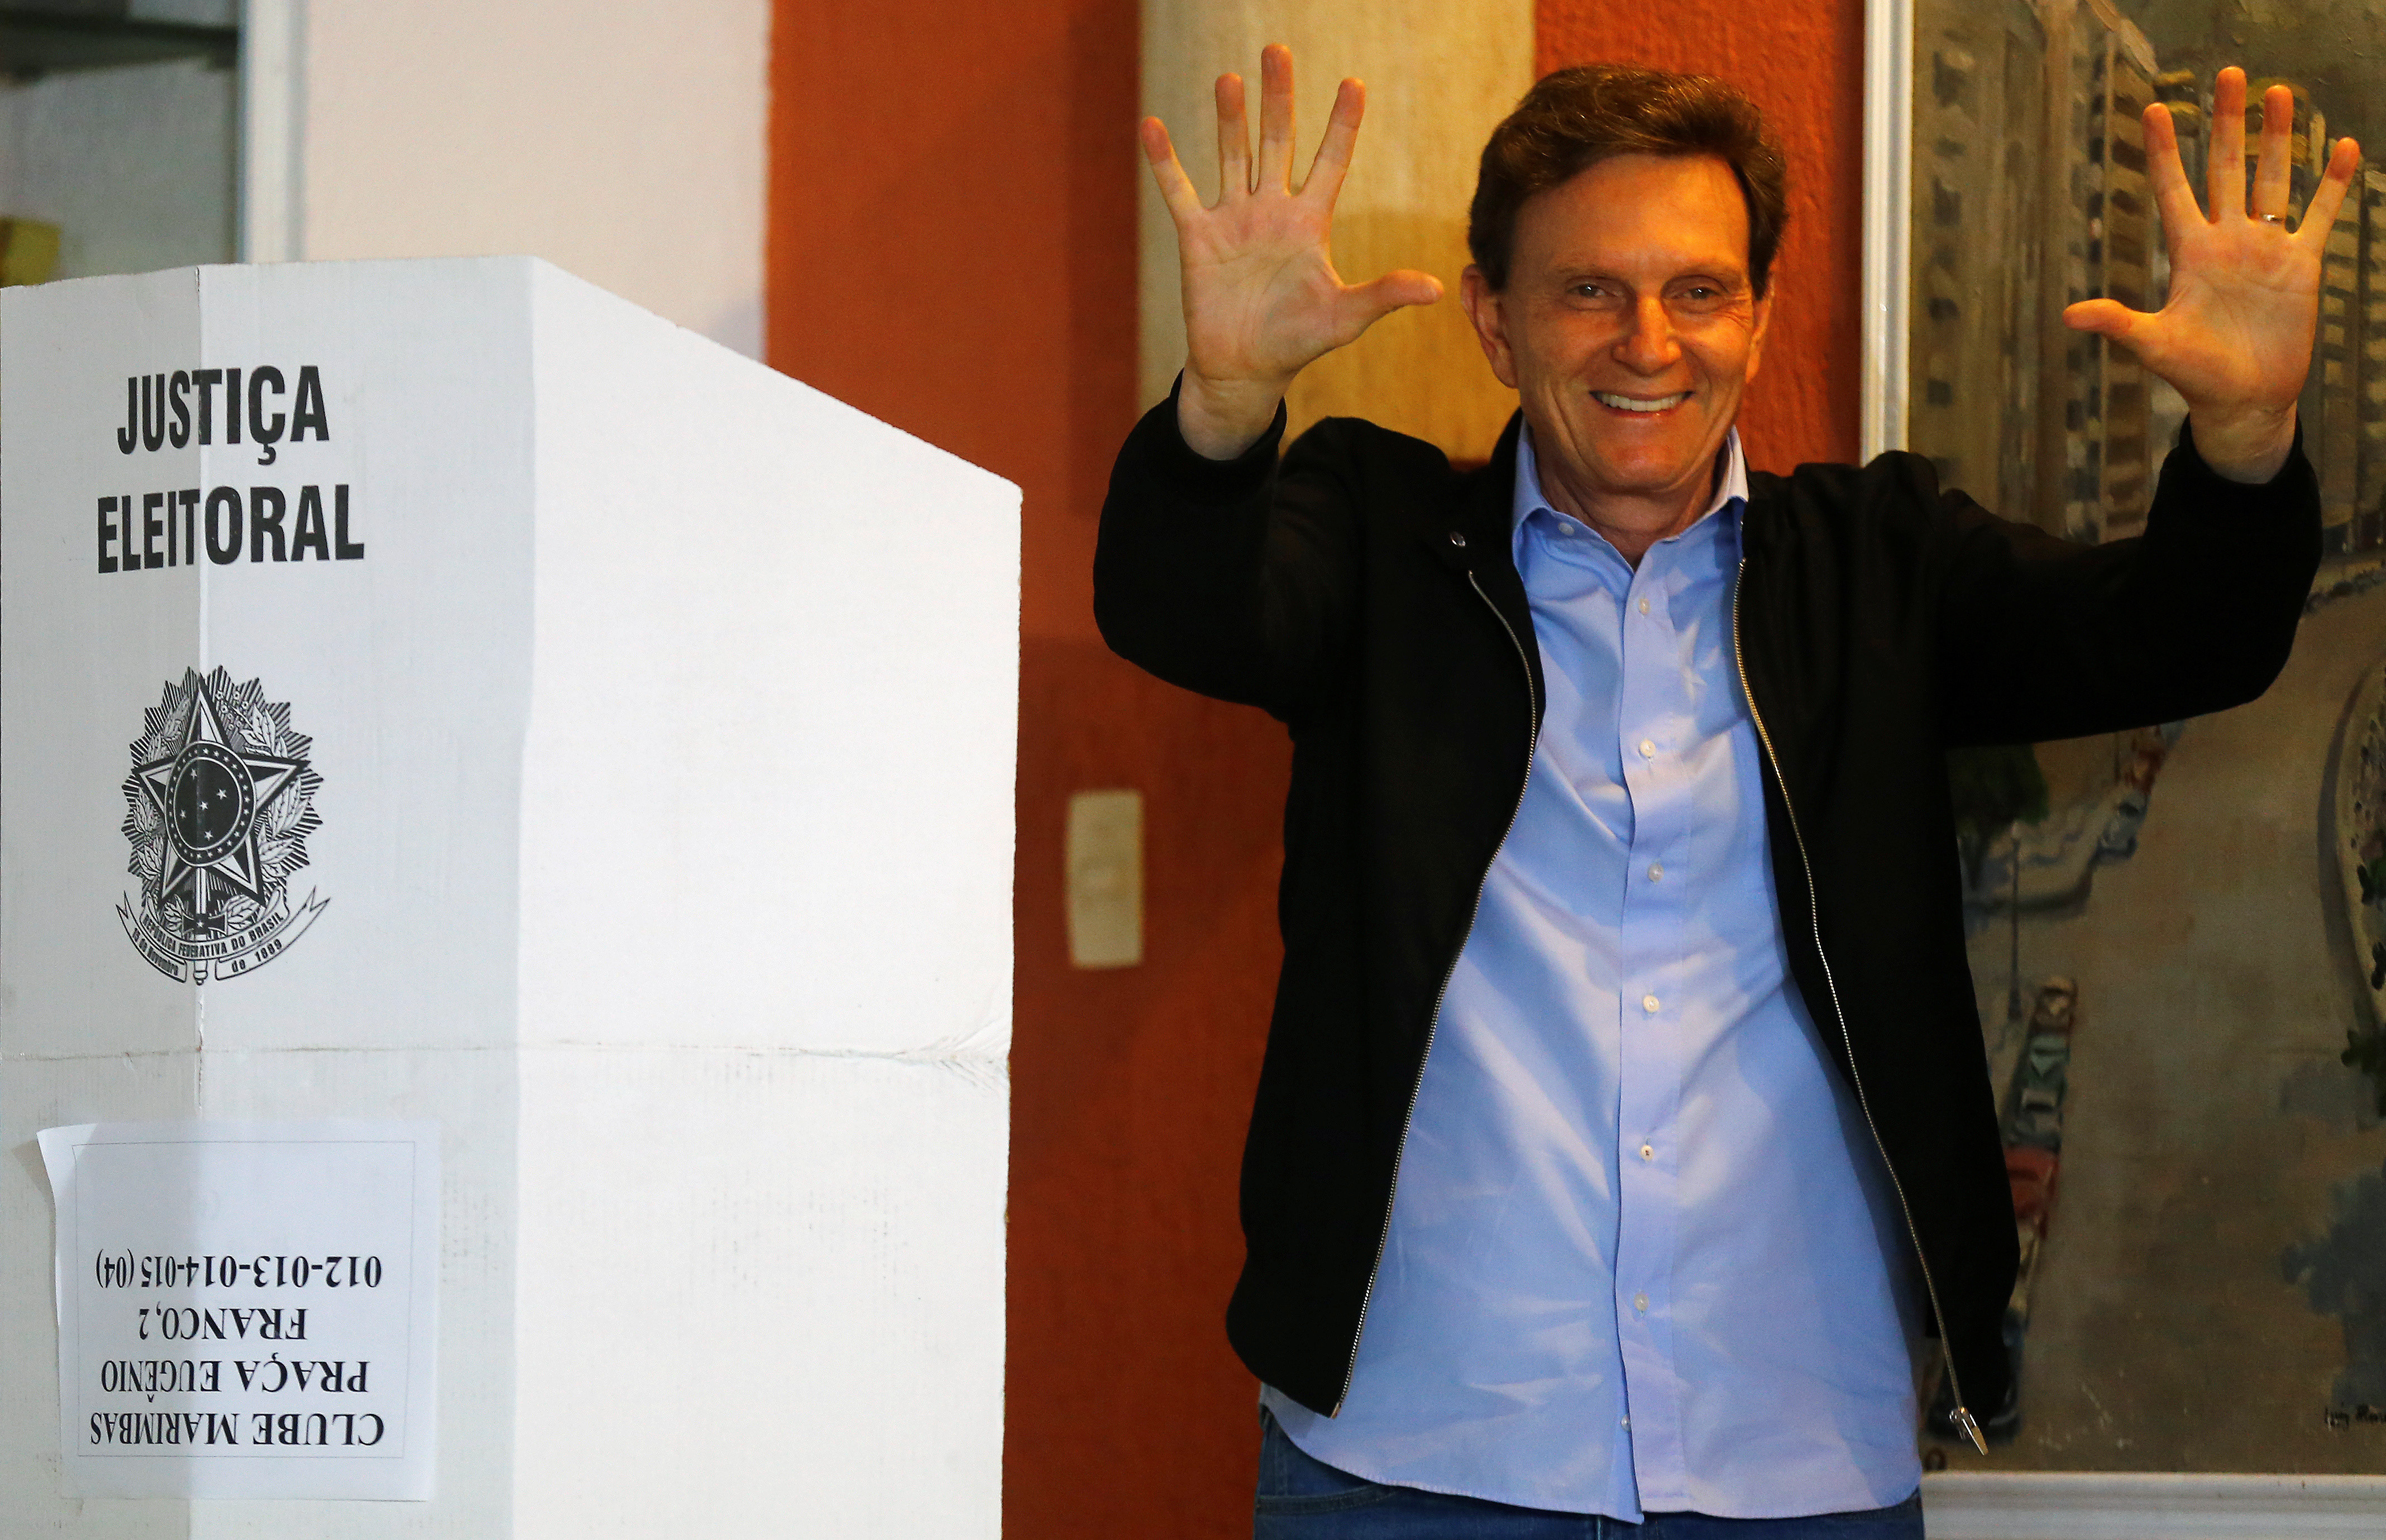 Senator Marcelo Crivella, candidate for Rio de Janeiro mayor, gestures to photographers after voting during the municipal elections at a polling station in Rio de Janeiro, Brazil, October 30, 2016. REUTERS/Ricardo Moraes - RTX2R1ZP